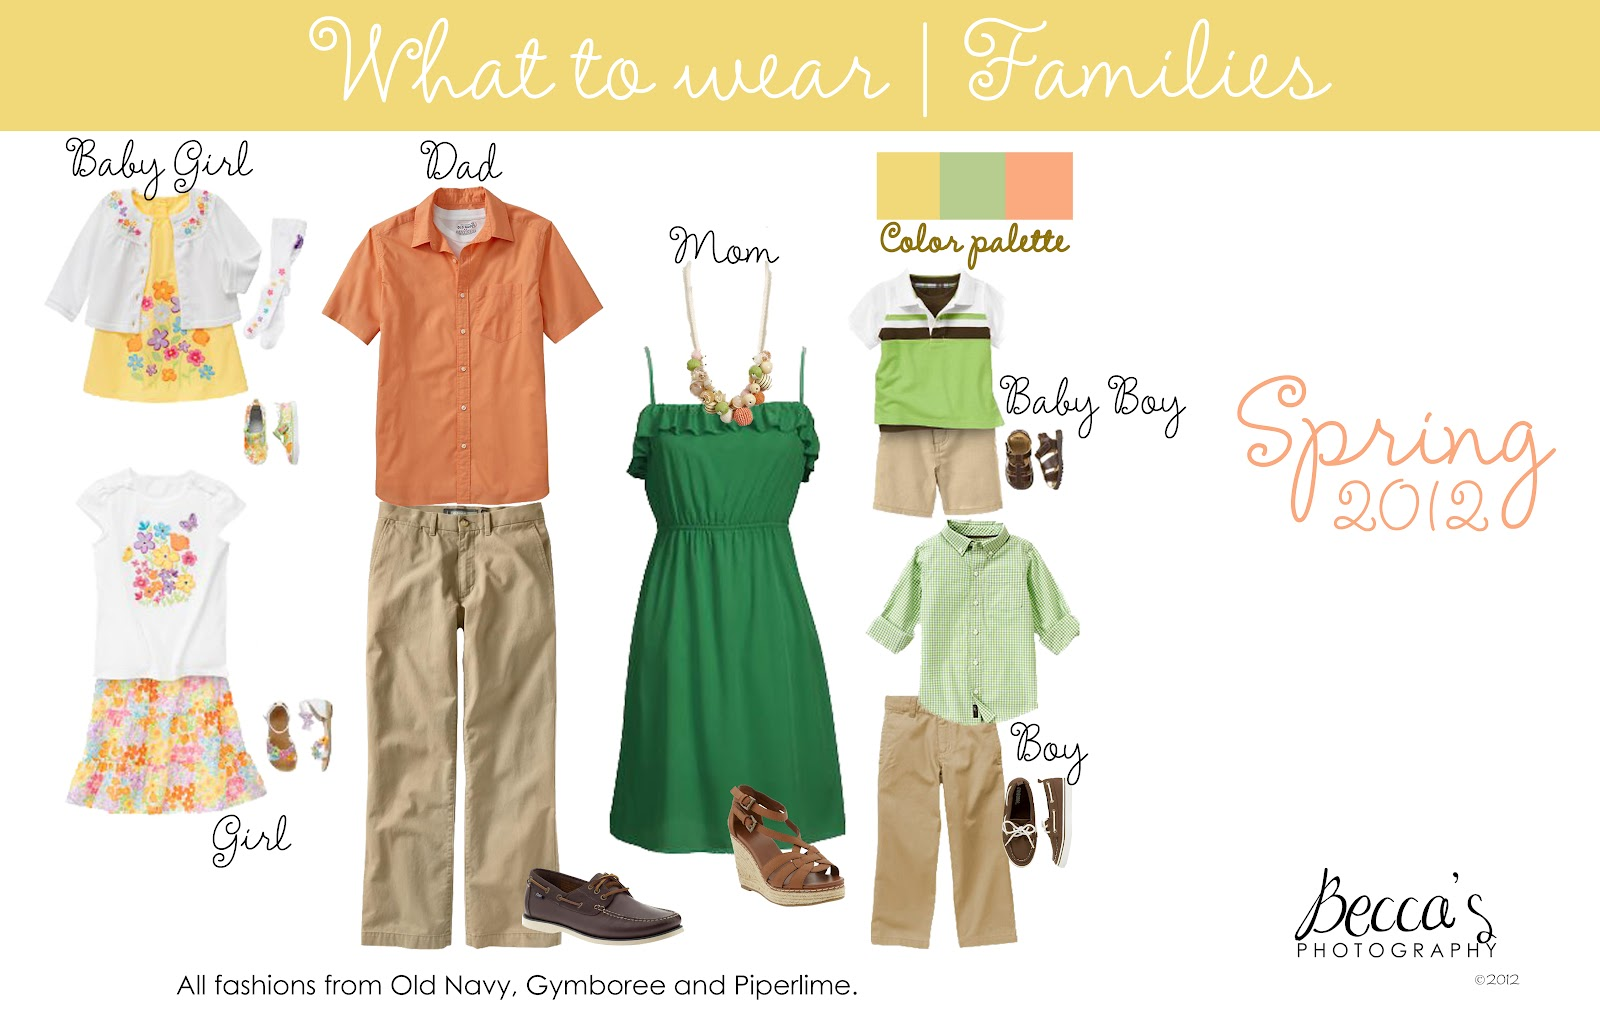 Rebecca Báez Photography: What to wear   Family Portrait Outfits